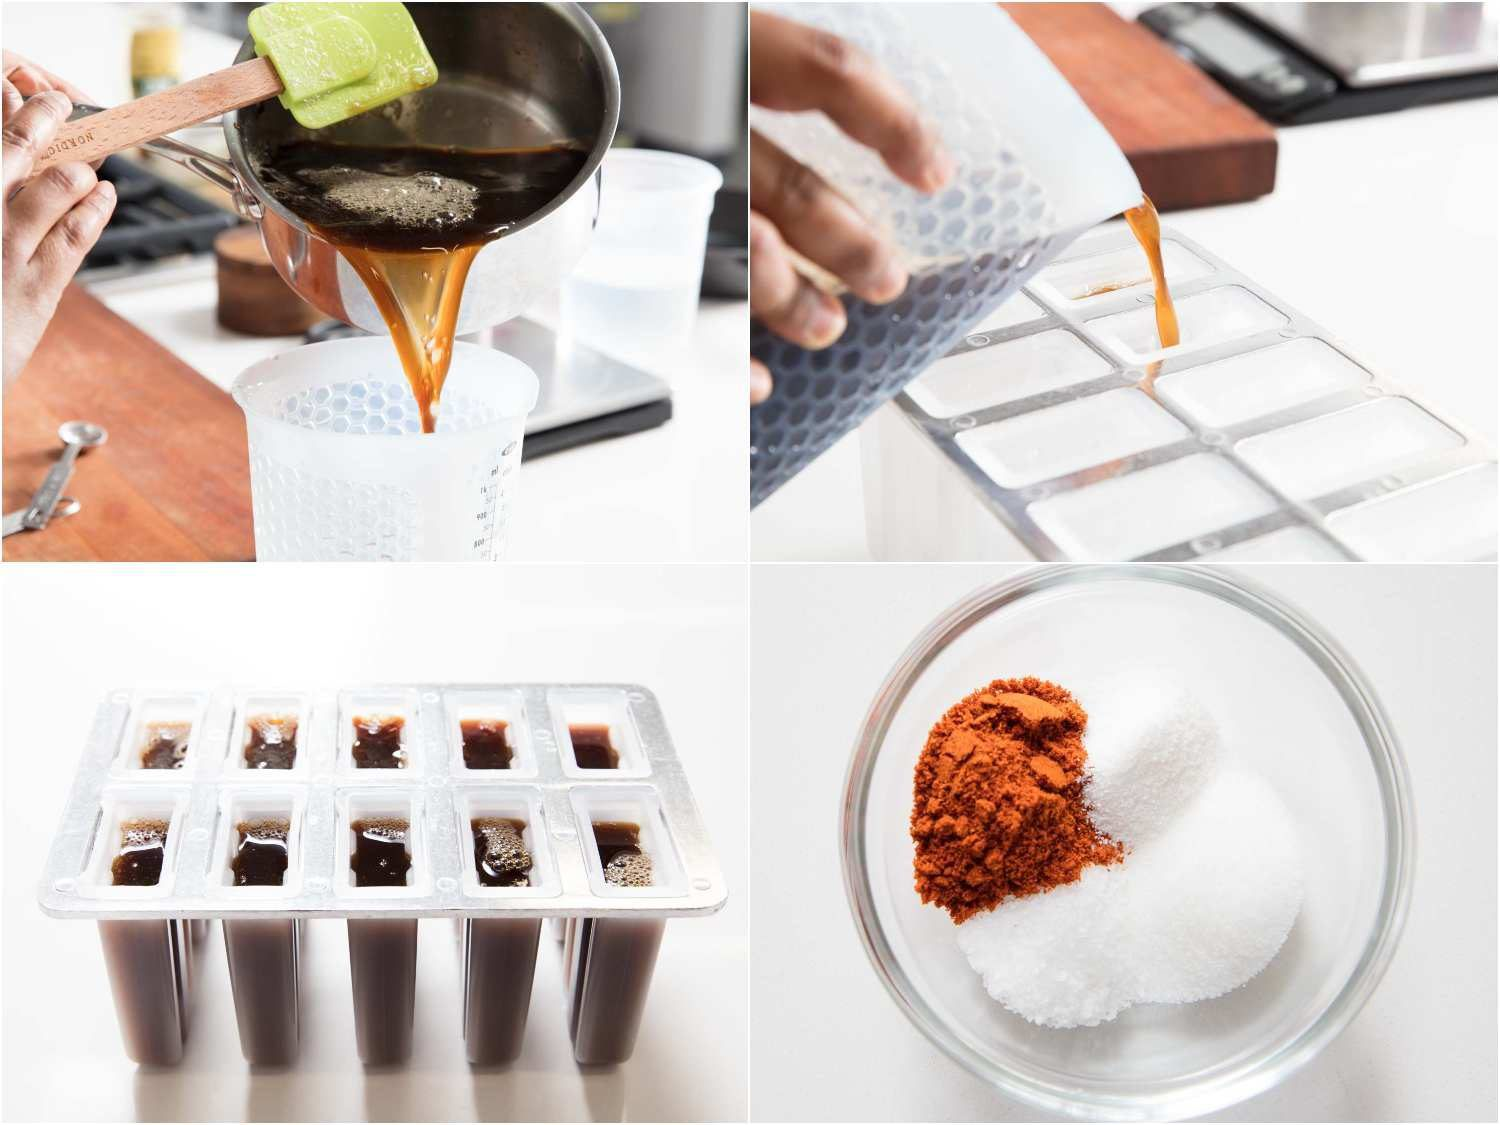 adding ice to popsicle base and filling molds